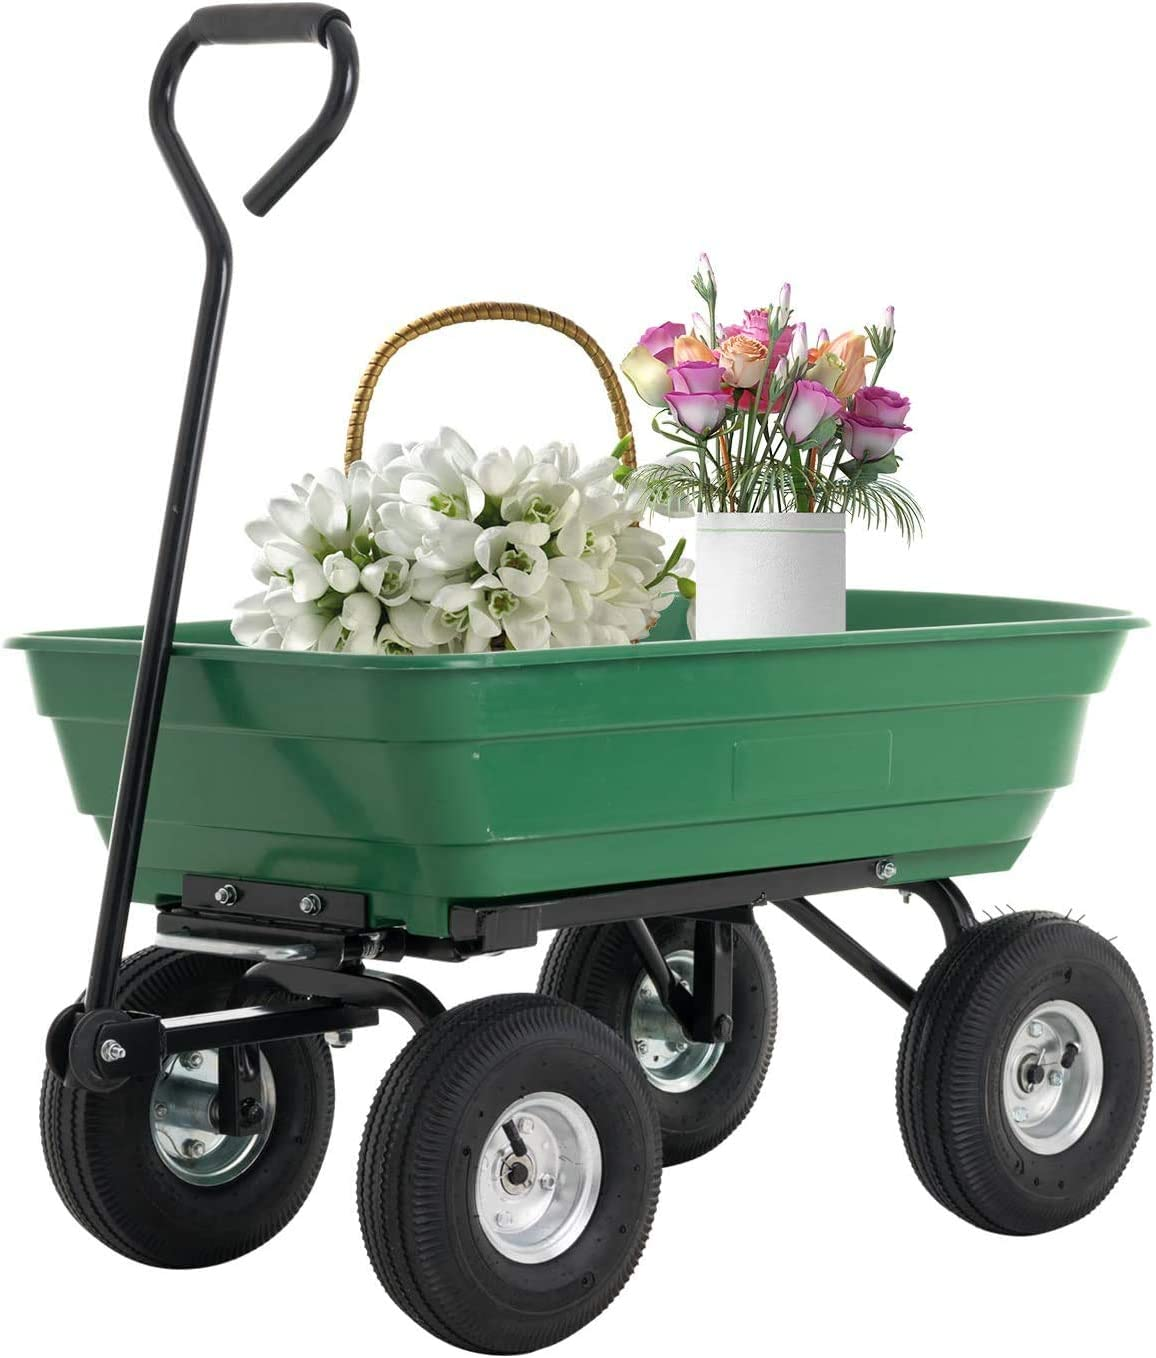 SUNCOO Dump Garden Cart with Heavy Duty Poly Garden Utility Yard Wagon with 4 Wheels, 600lbs Multifunctional Pulling Wagon, Green